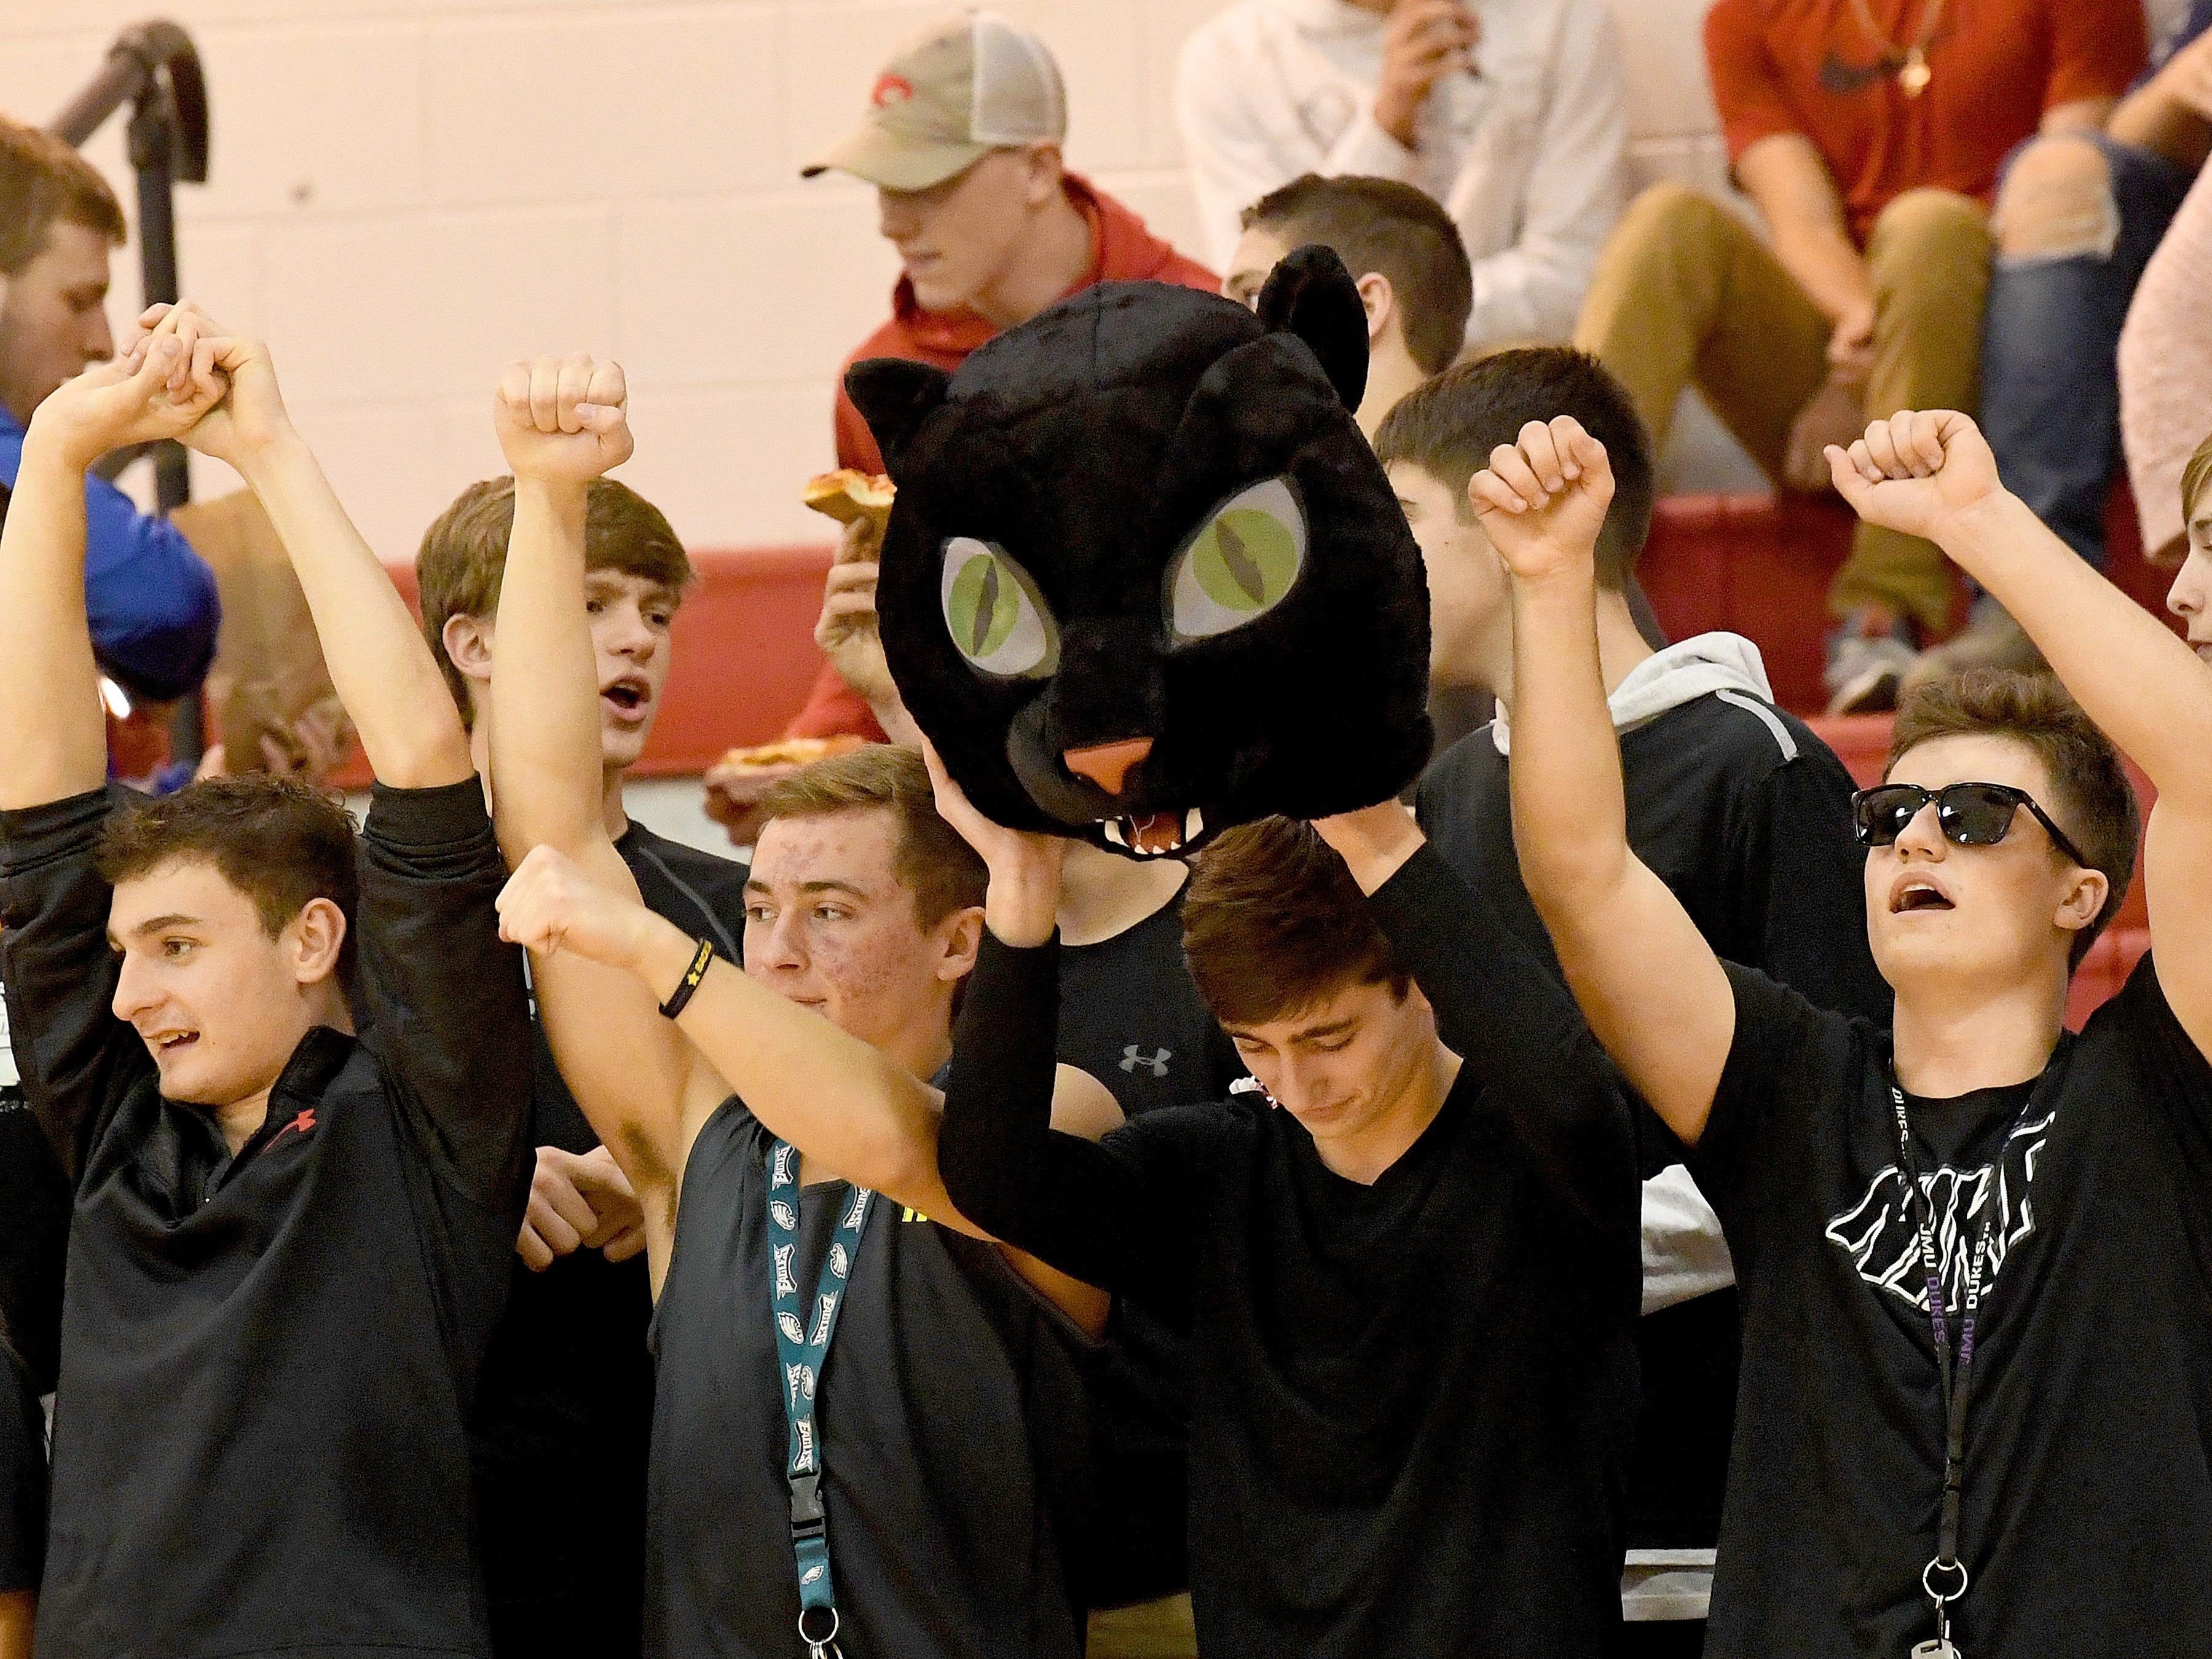 Riverheads fans cheer for their team during the Region 1B volleyball championship played in Greenville on Wednesday, Nov. 7, 2018.